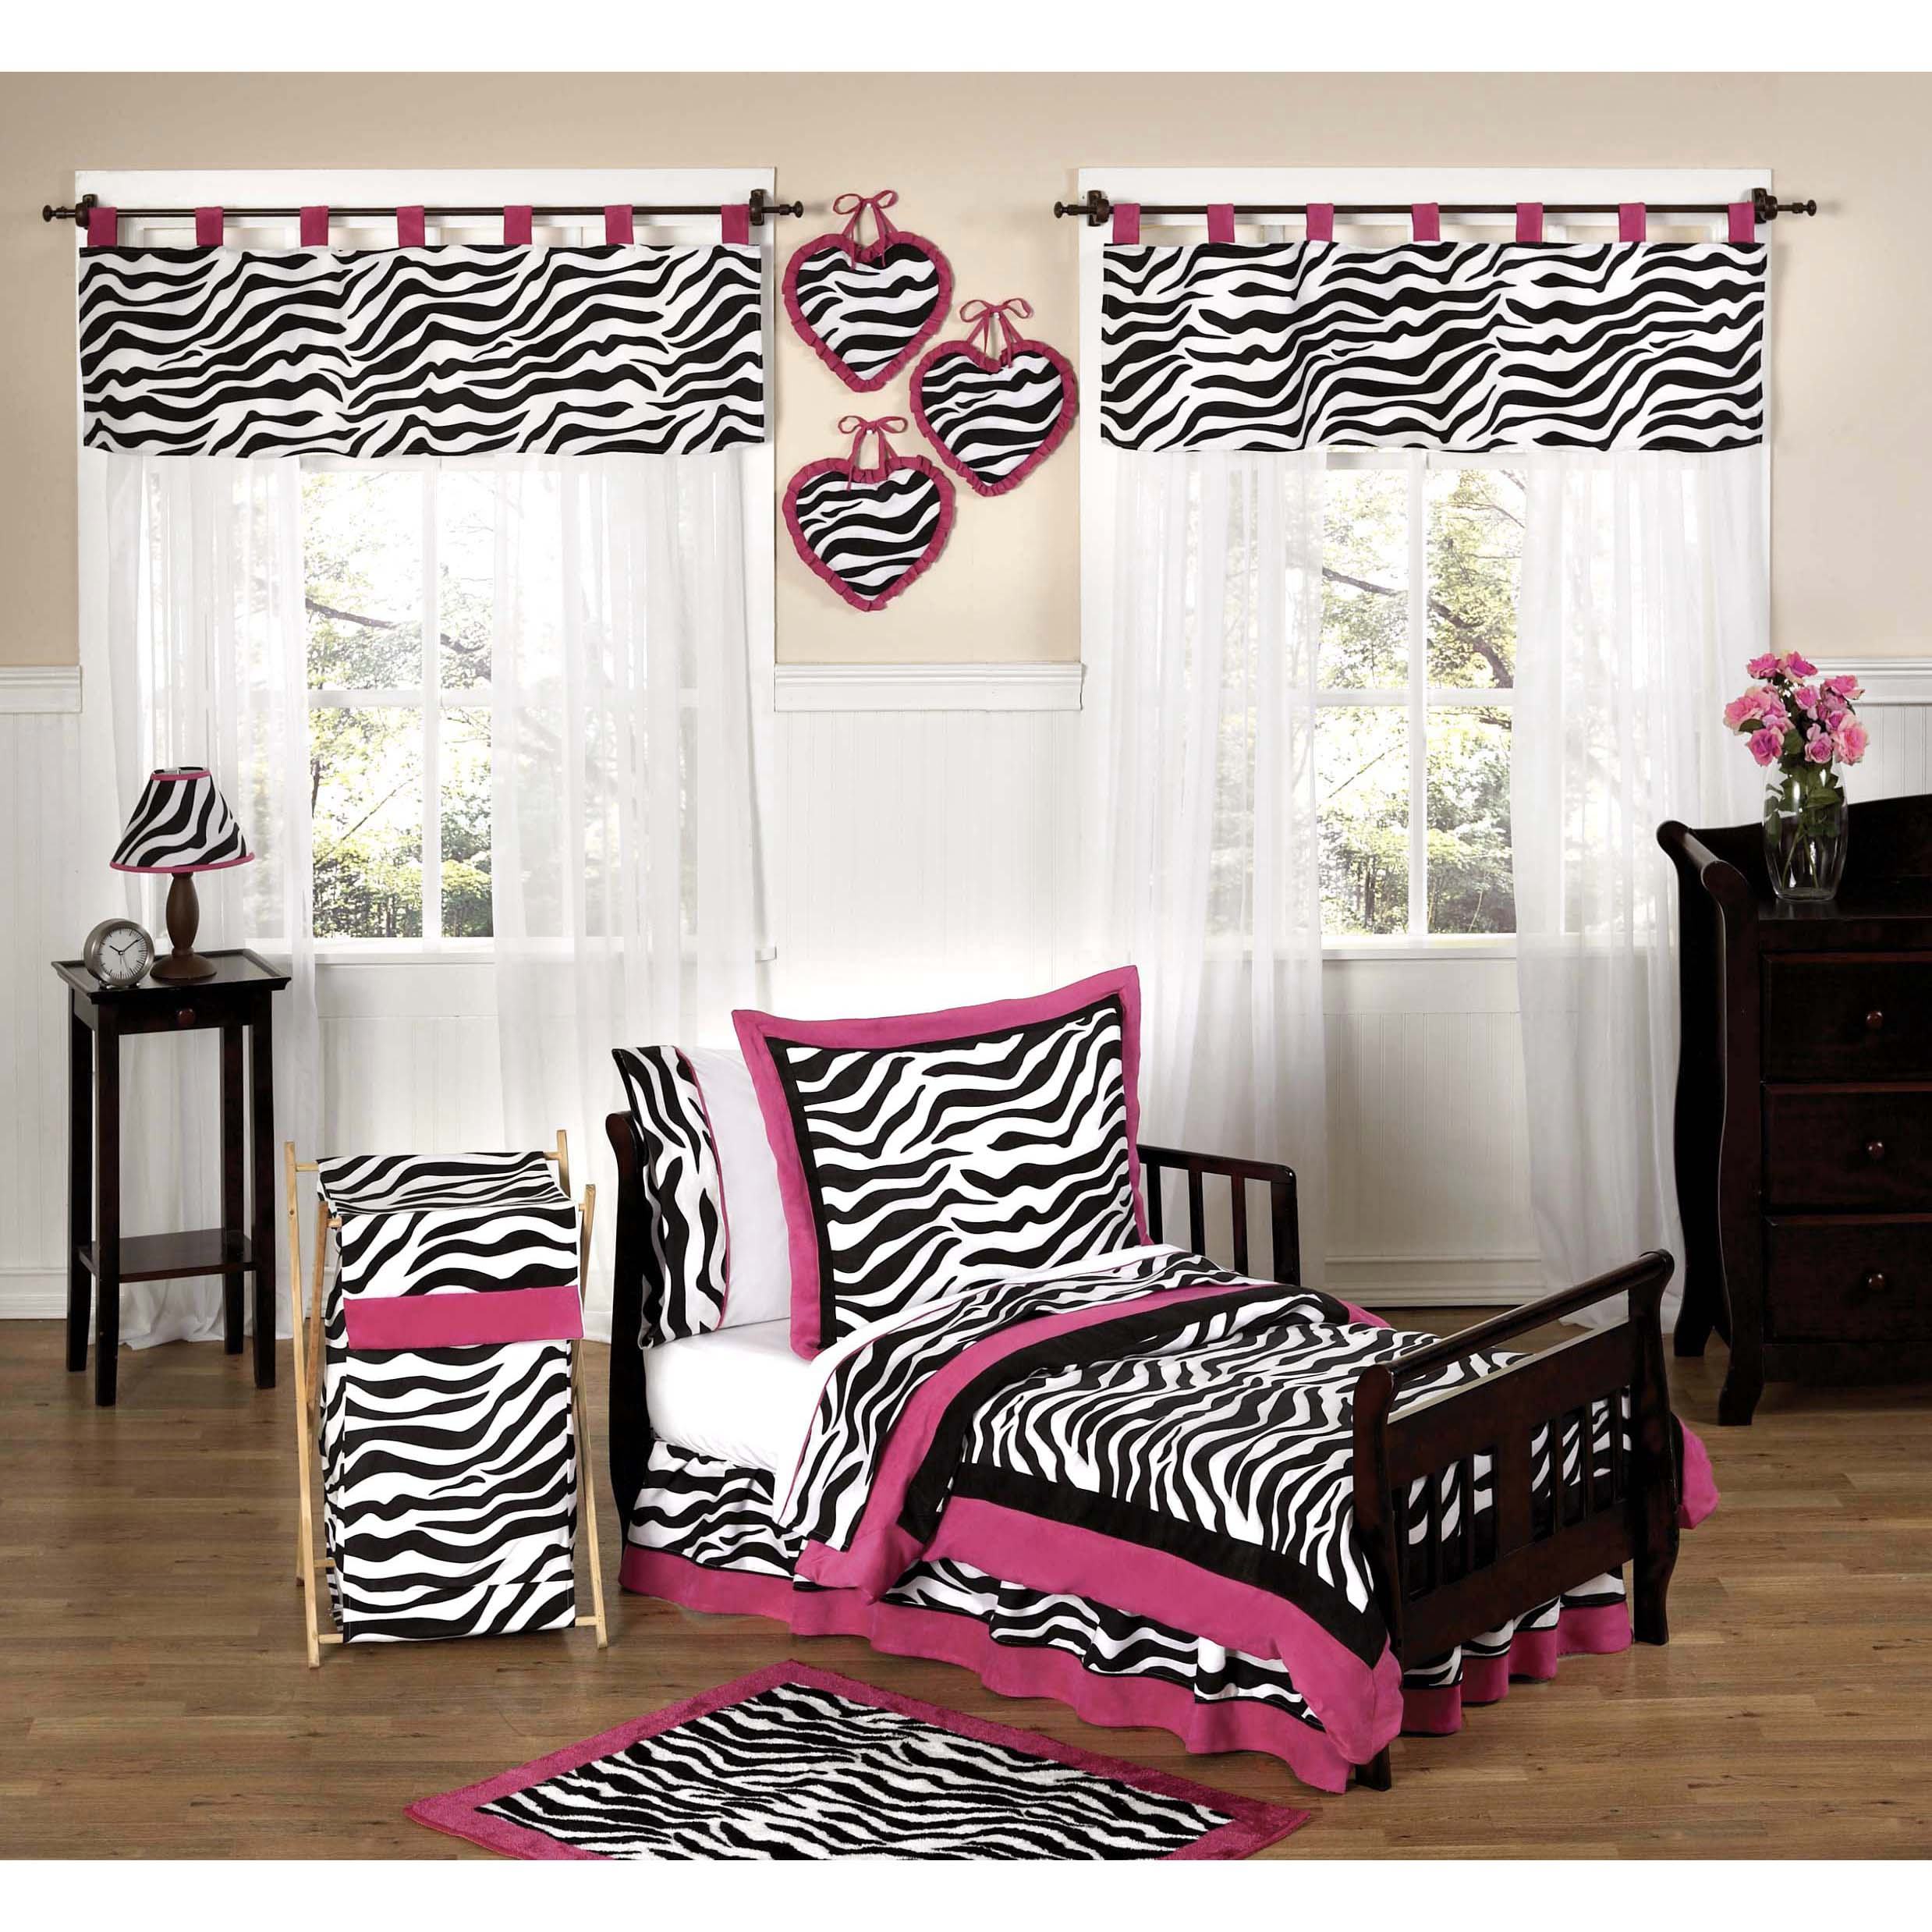 query extrabigfoot at products deals compare comforter com pr and bedding search more pin queen pink sets